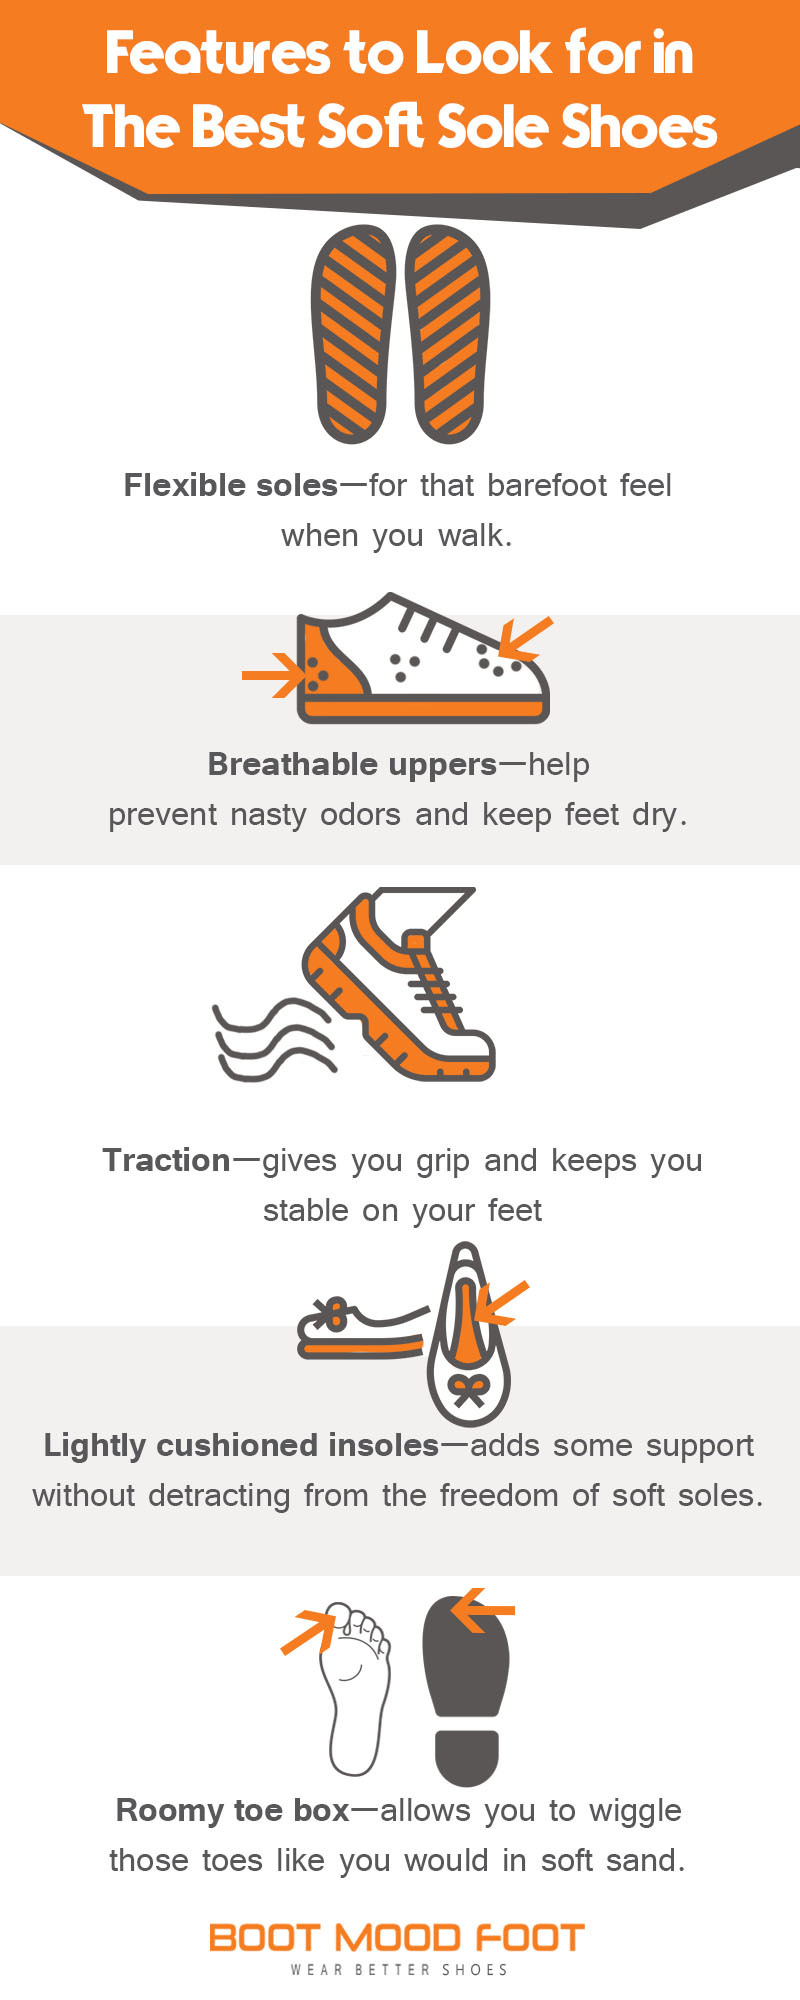 best soft sole shoes infographic